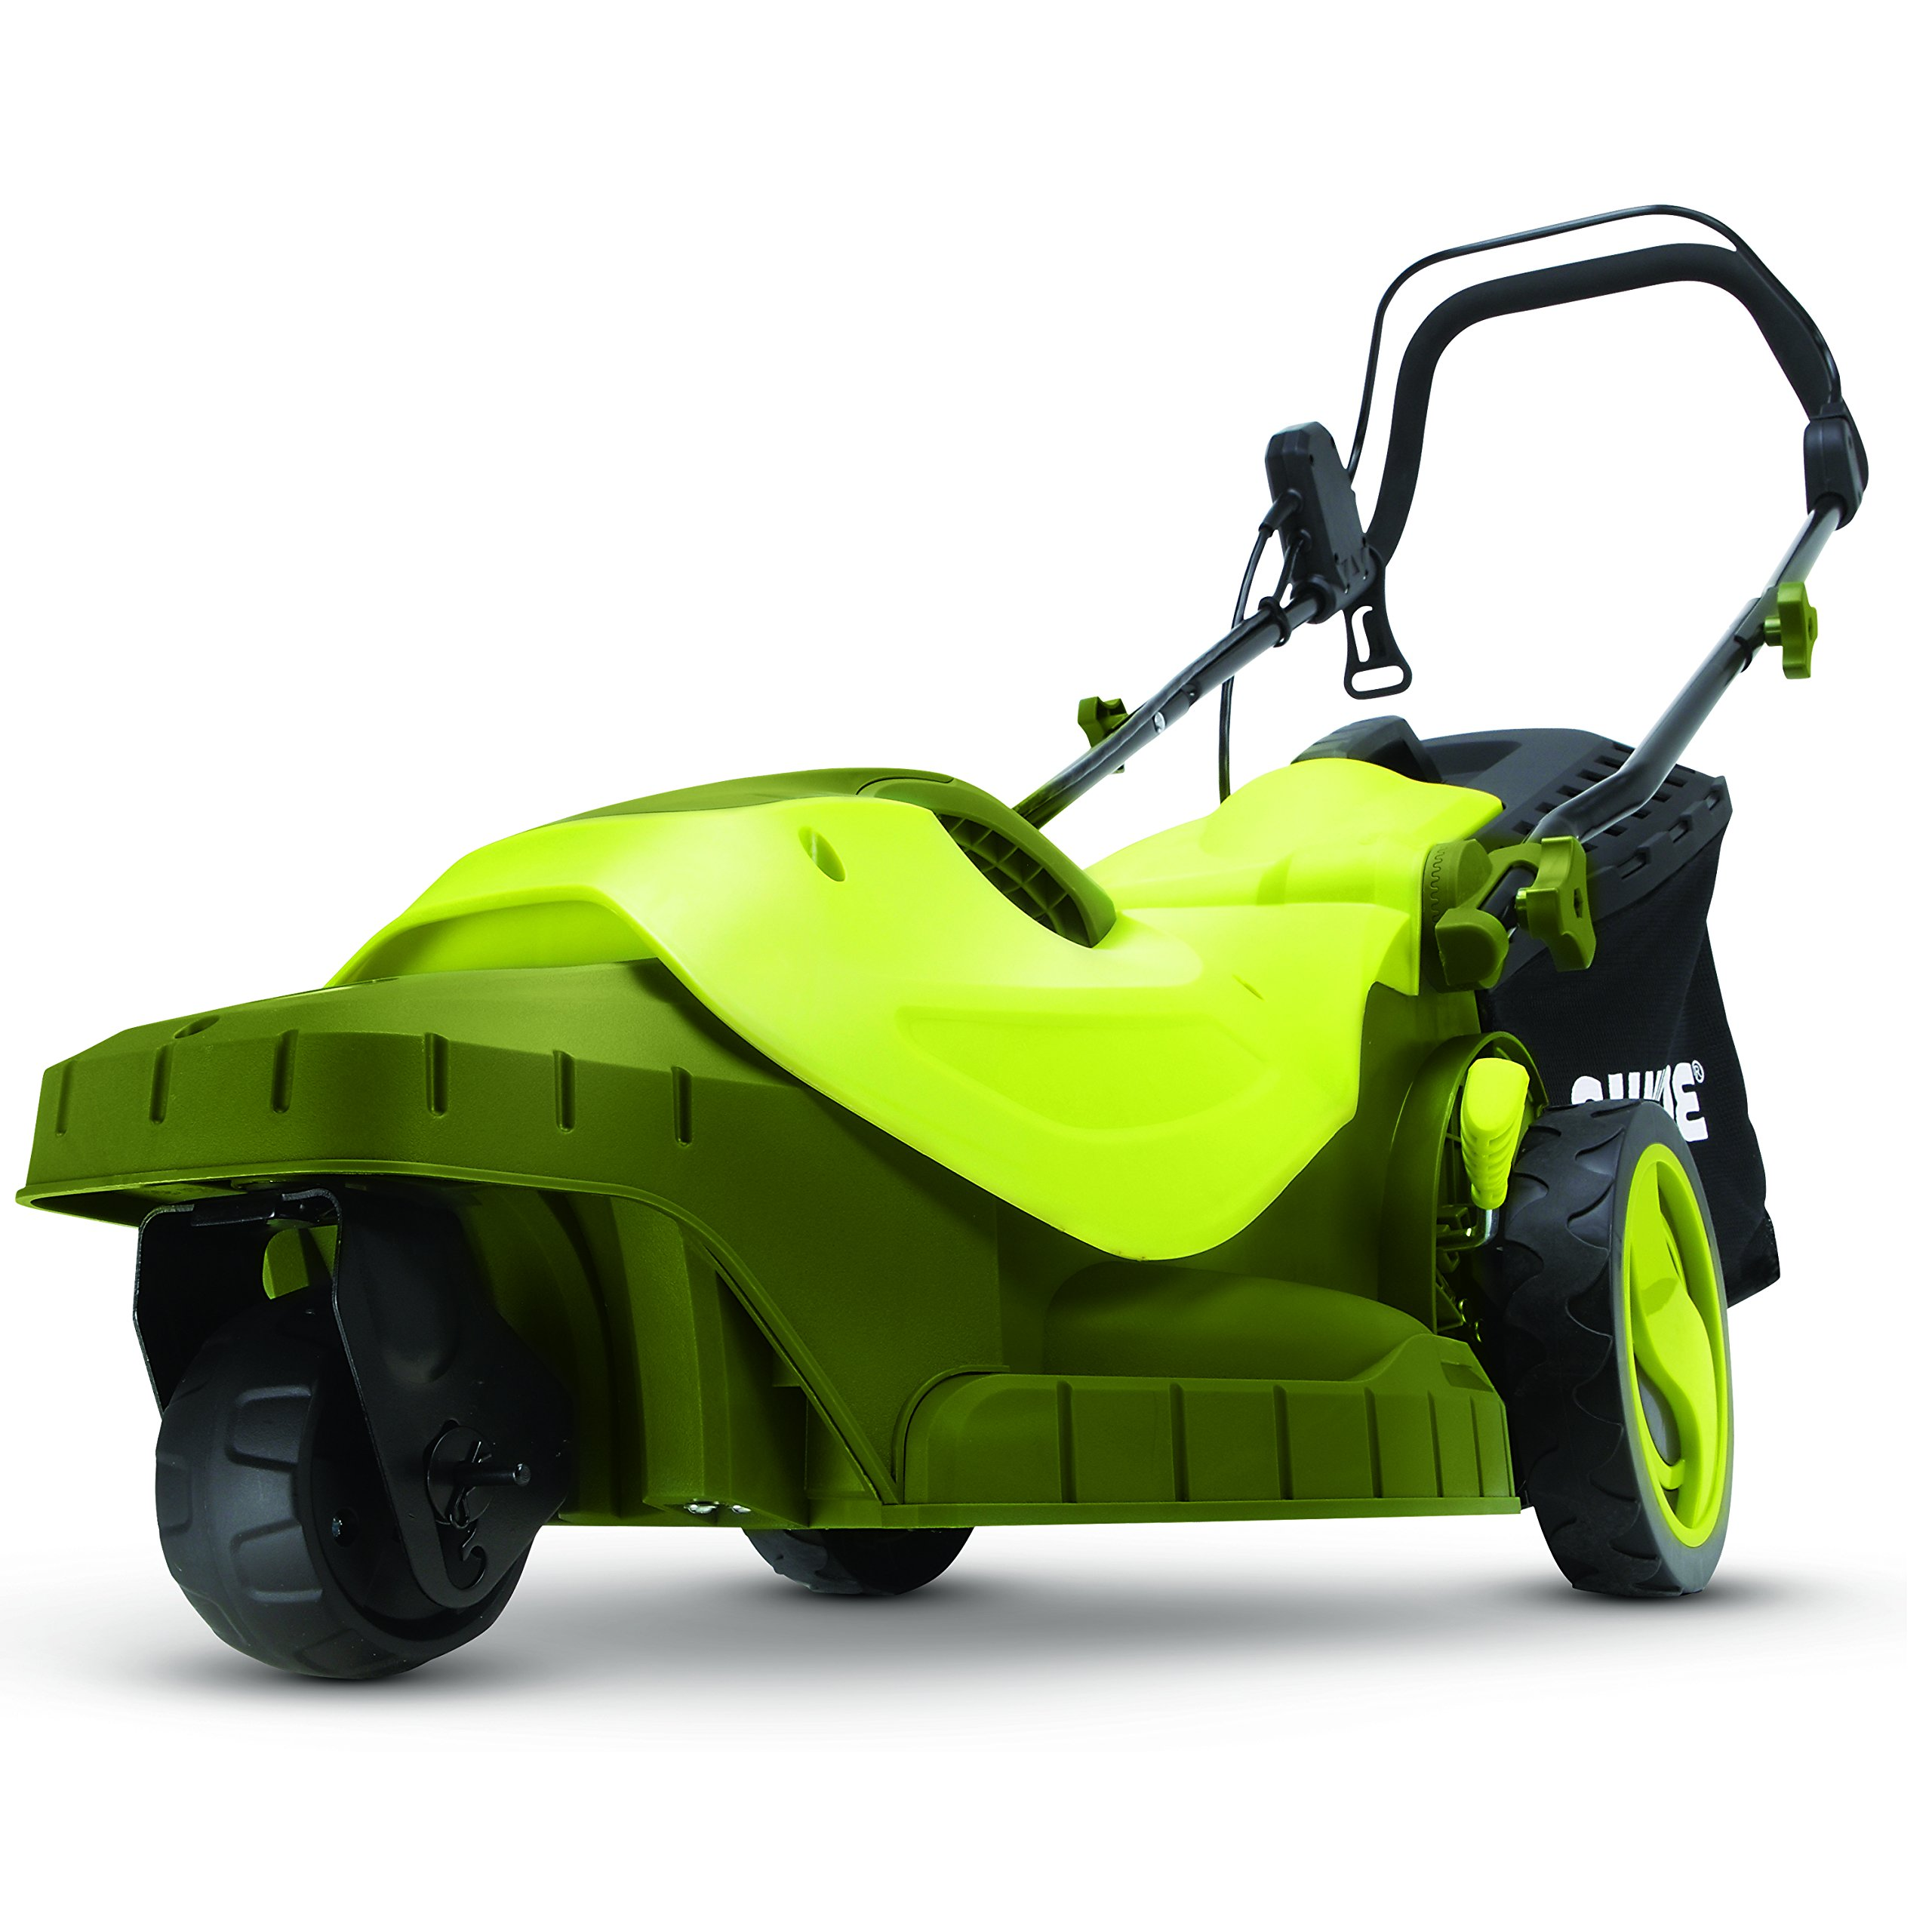 Sun Joe MJ404E-360 Mower Joe Electric Lawn, Green